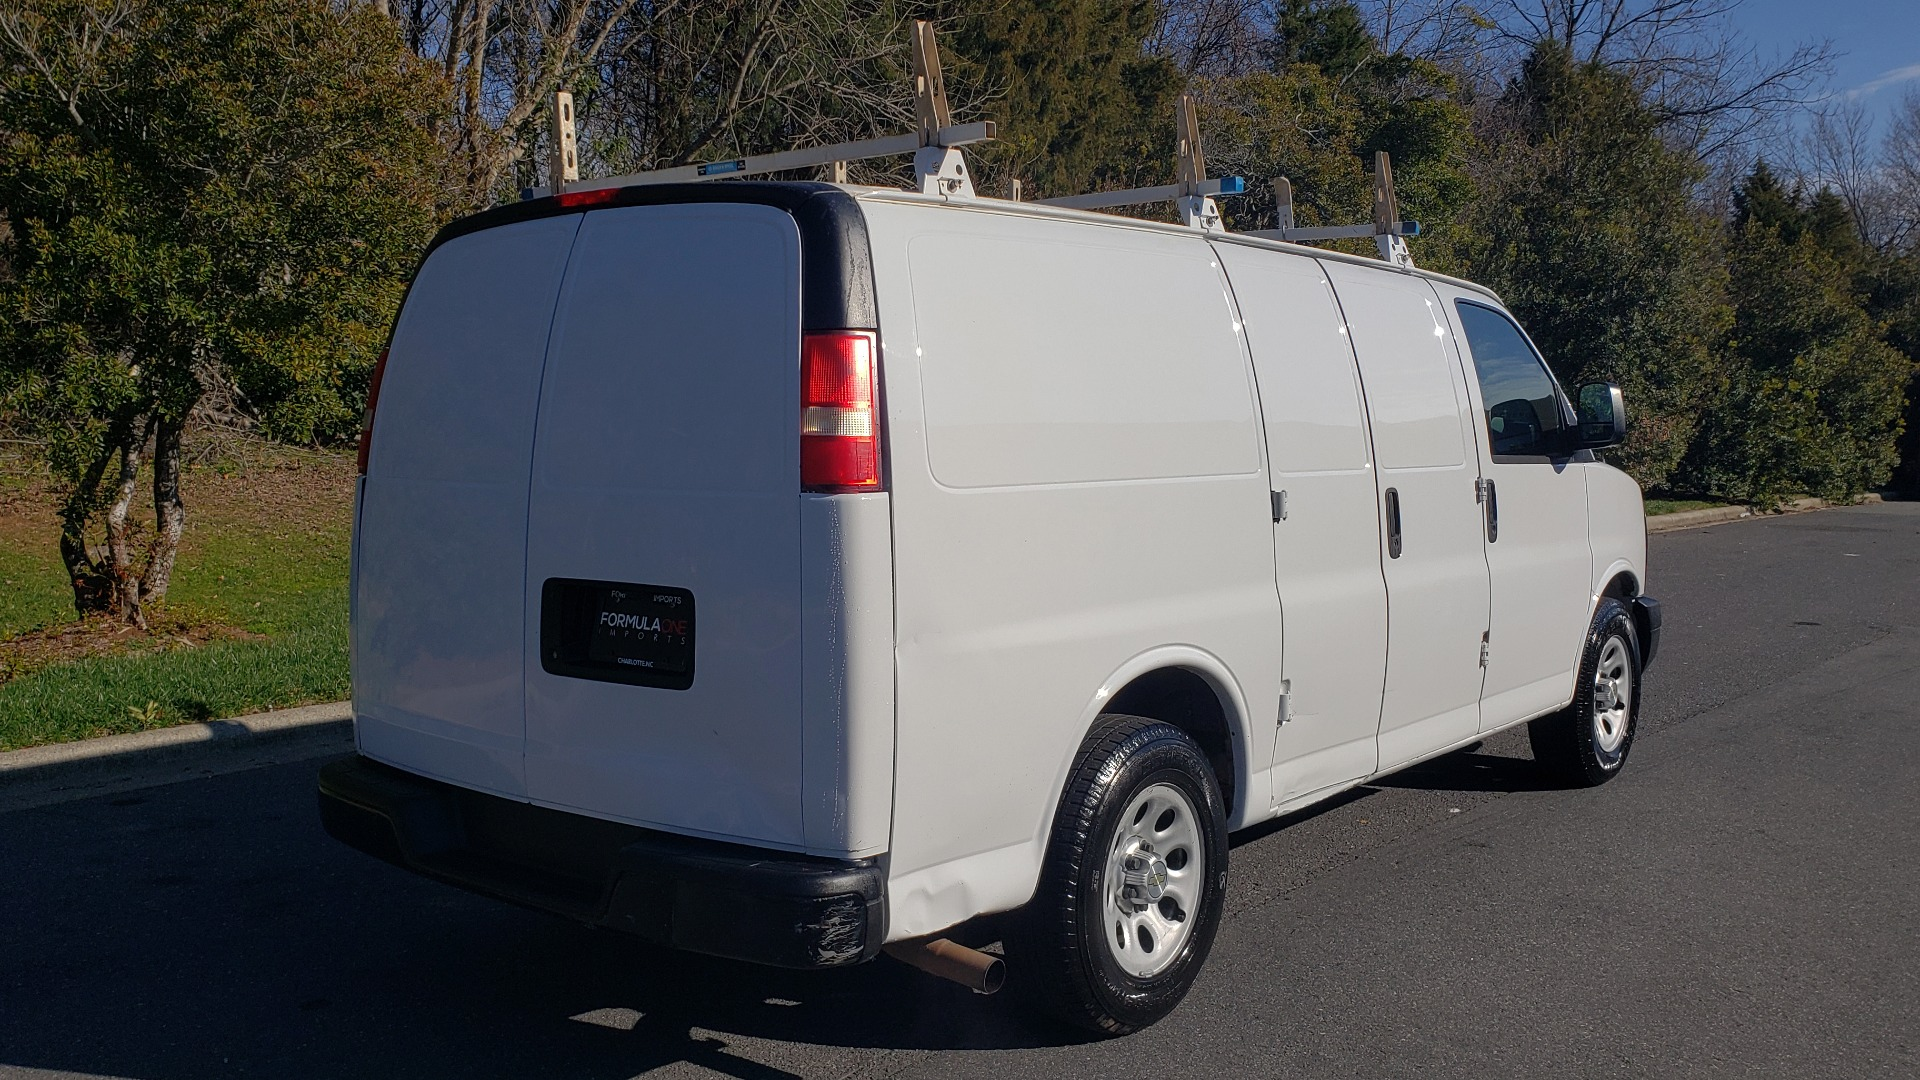 Used 2012 Chevrolet EXPRESS WORK VAN 1500 / 135 WB / 4.3L V6 / 4-SPD AUTO / ROOF RACK for sale $11,600 at Formula Imports in Charlotte NC 28227 6